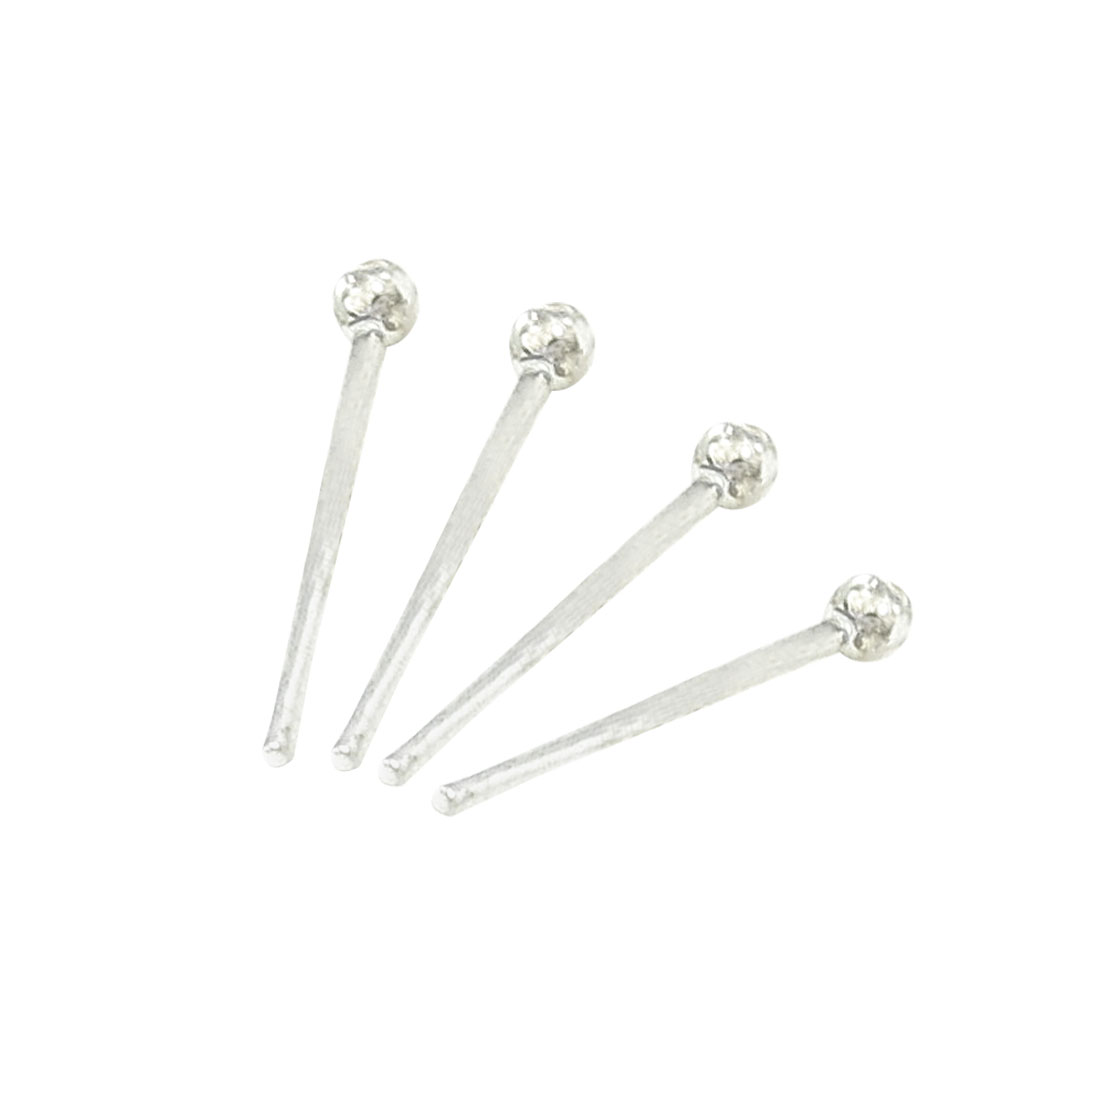 Silver Tone 2mm Diameter Metal Ball Stud Earrings Pierced Style Ear Pin 2 Pair